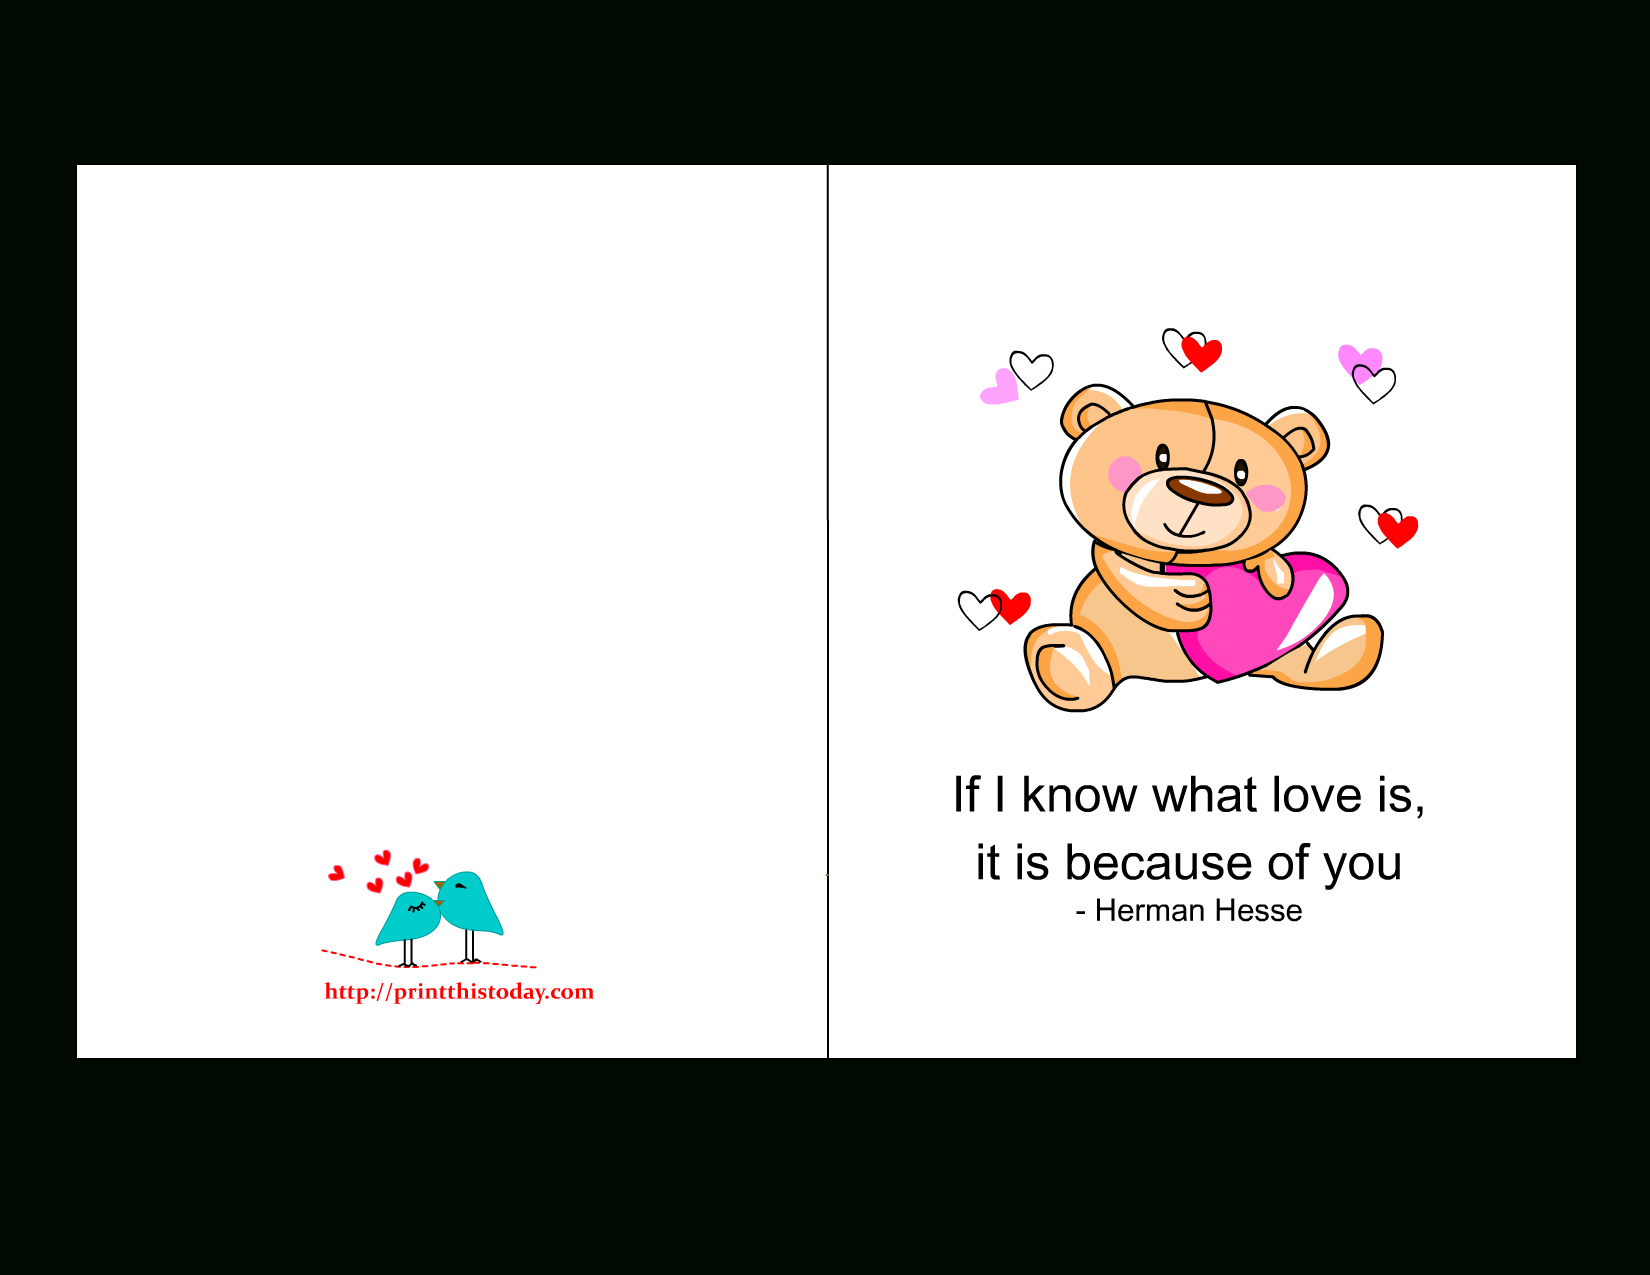 Printable Love Cards With Cute, Romantic And Thoughtful Quotes - Free Printable Love Greeting Cards